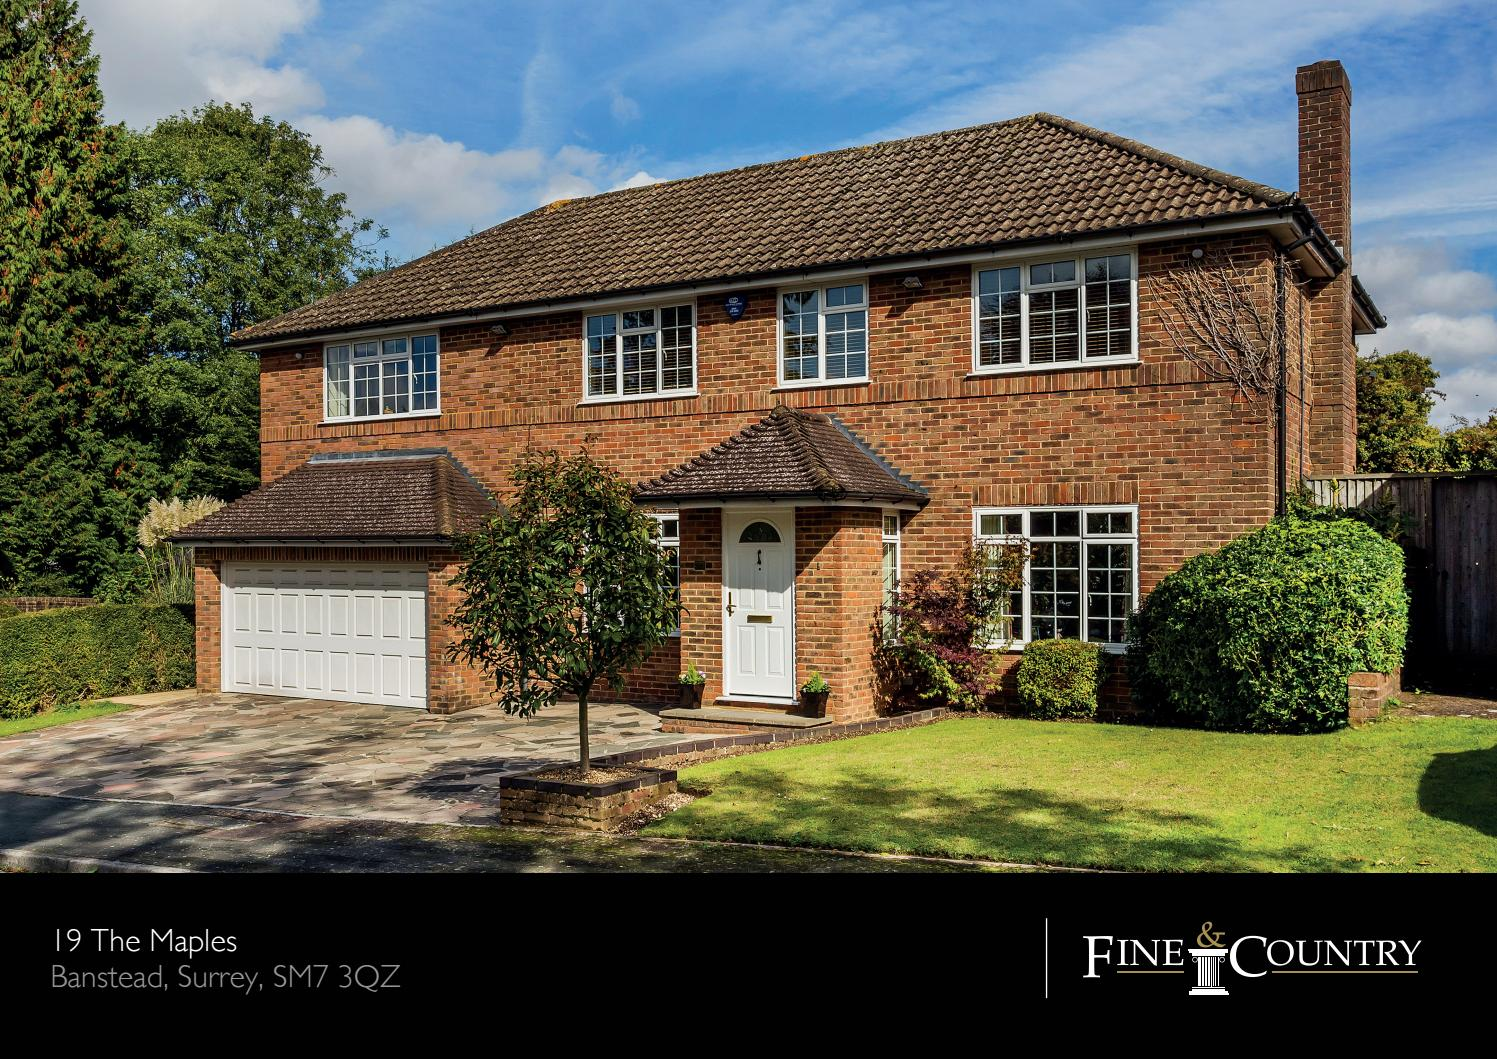 19 The Maples Banstead Surrey Sm7 3qz By Fine Country